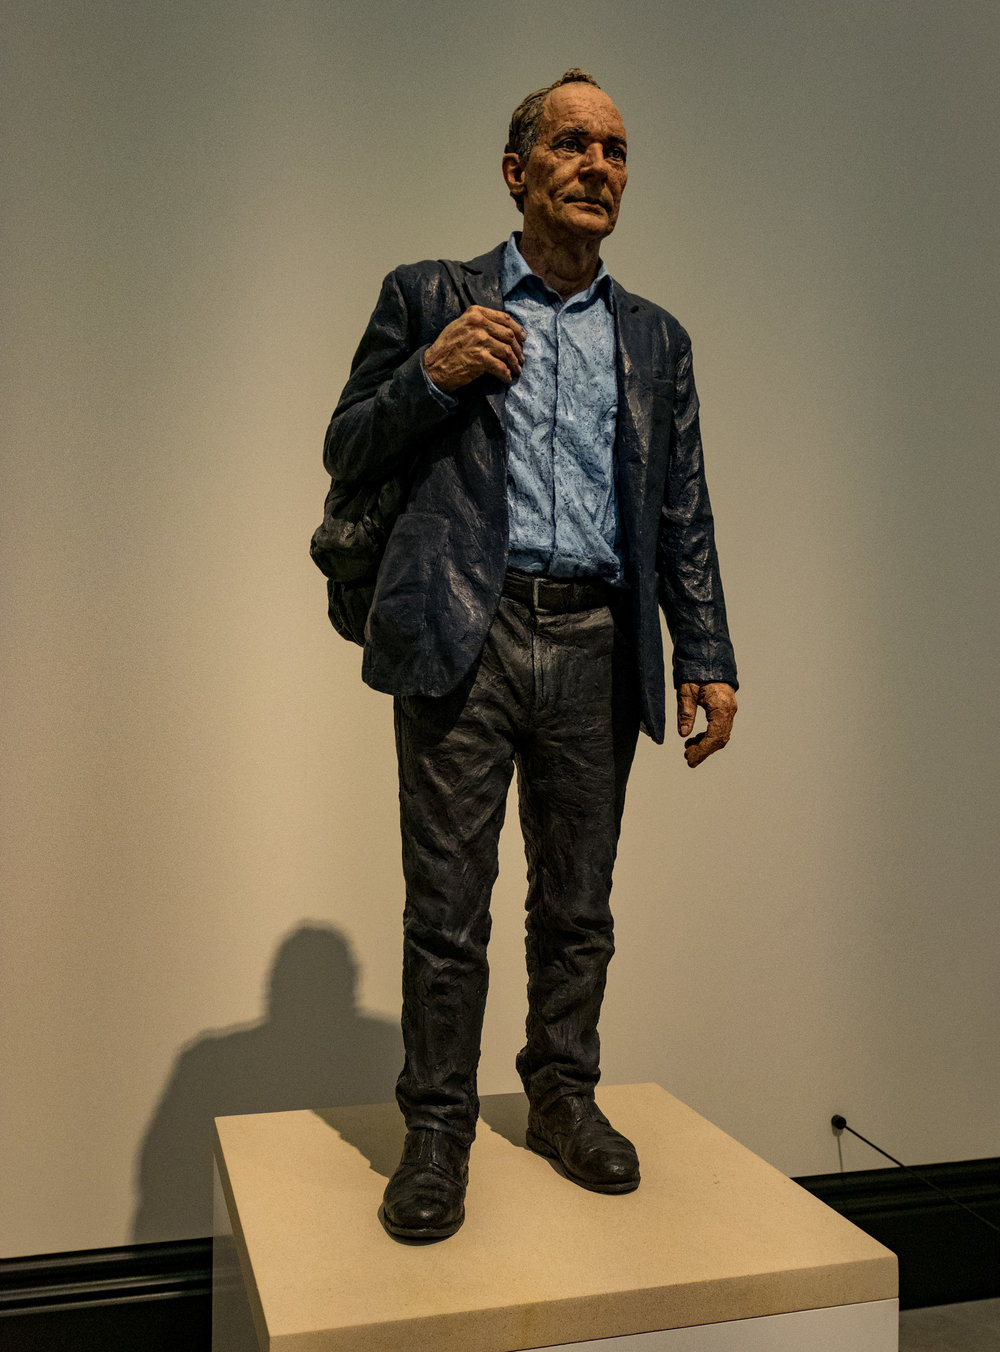 Master of the Web: Tim Berners-Lee at the National Portrait Gallery in London. The GM1 with the 12-32mm pancake zoom makes a discreet snapper to keep in your pocket. Here at 35mm equivalent